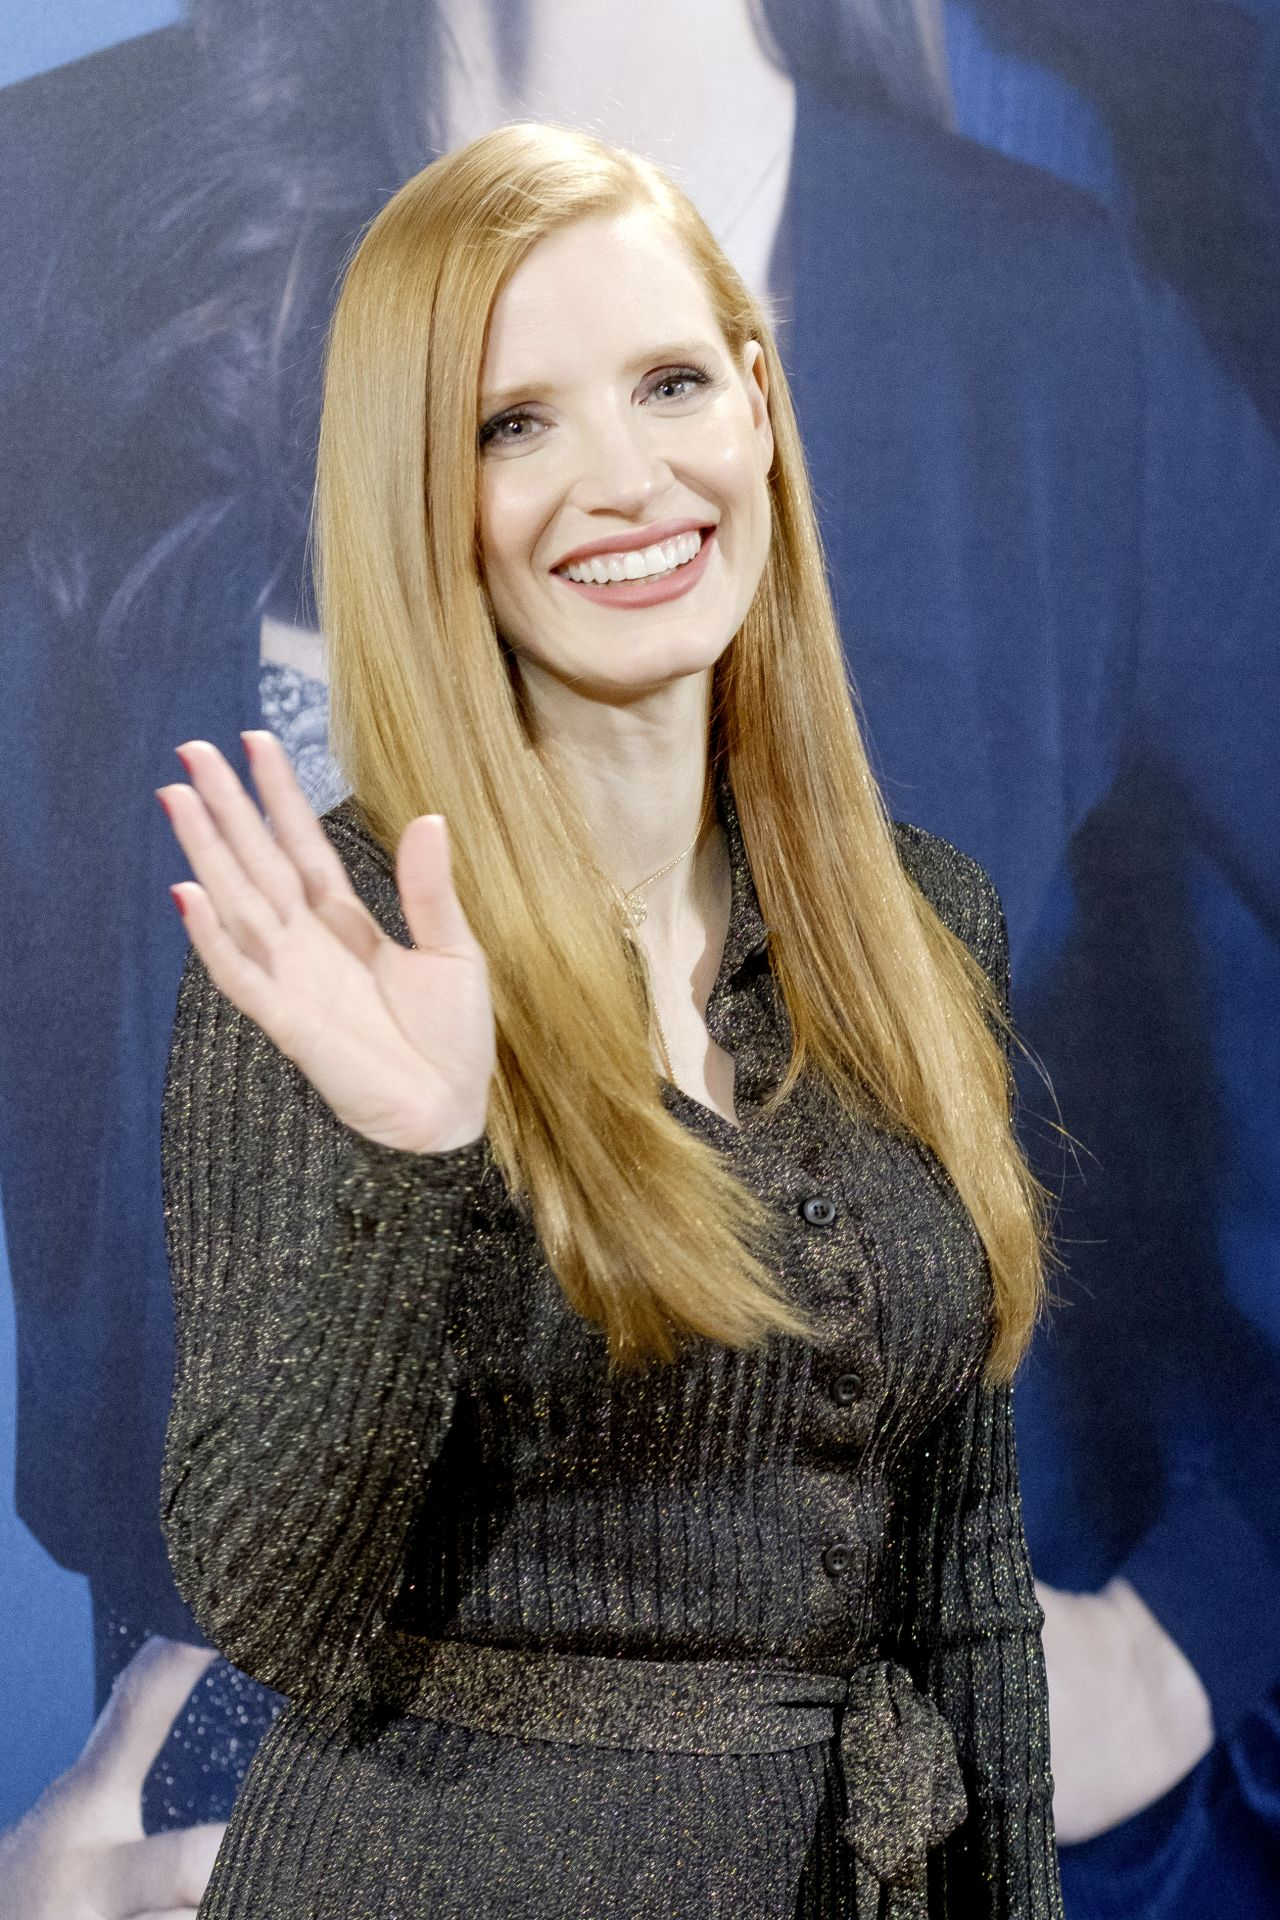 http://celebmafia.com/wp-content/uploads/2017/12/jessica-chastain-molly-s-game-photocall-in-madrid-13.jpg